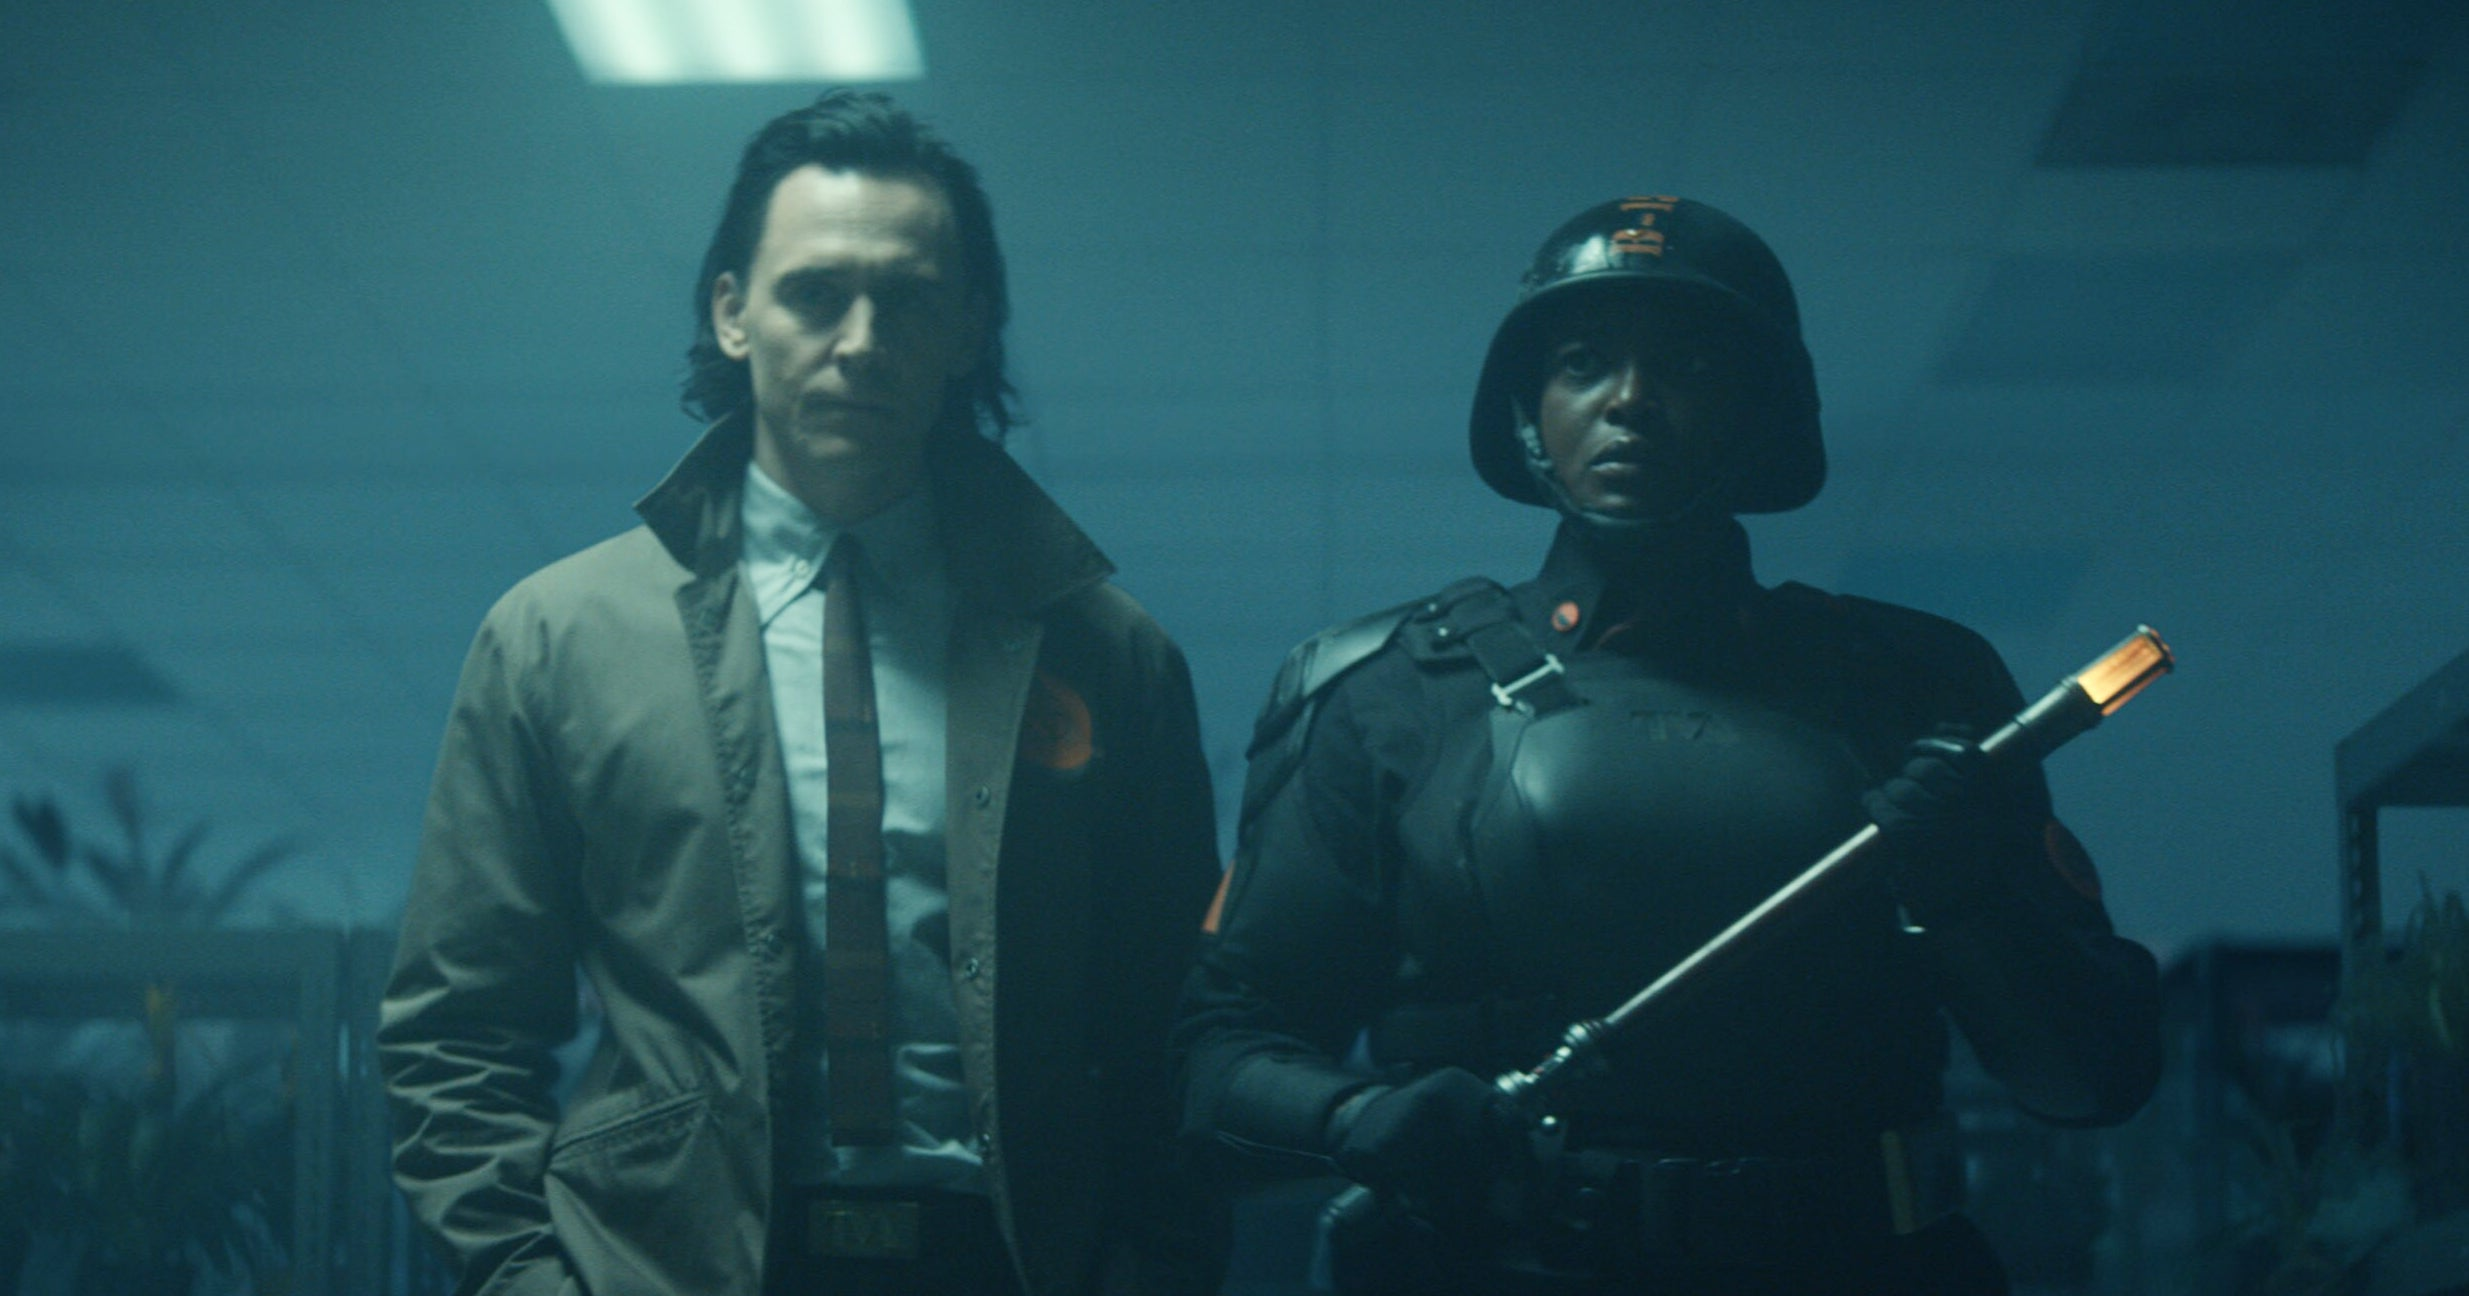 Just How Excited Should We Be About Loki's Newest Character?